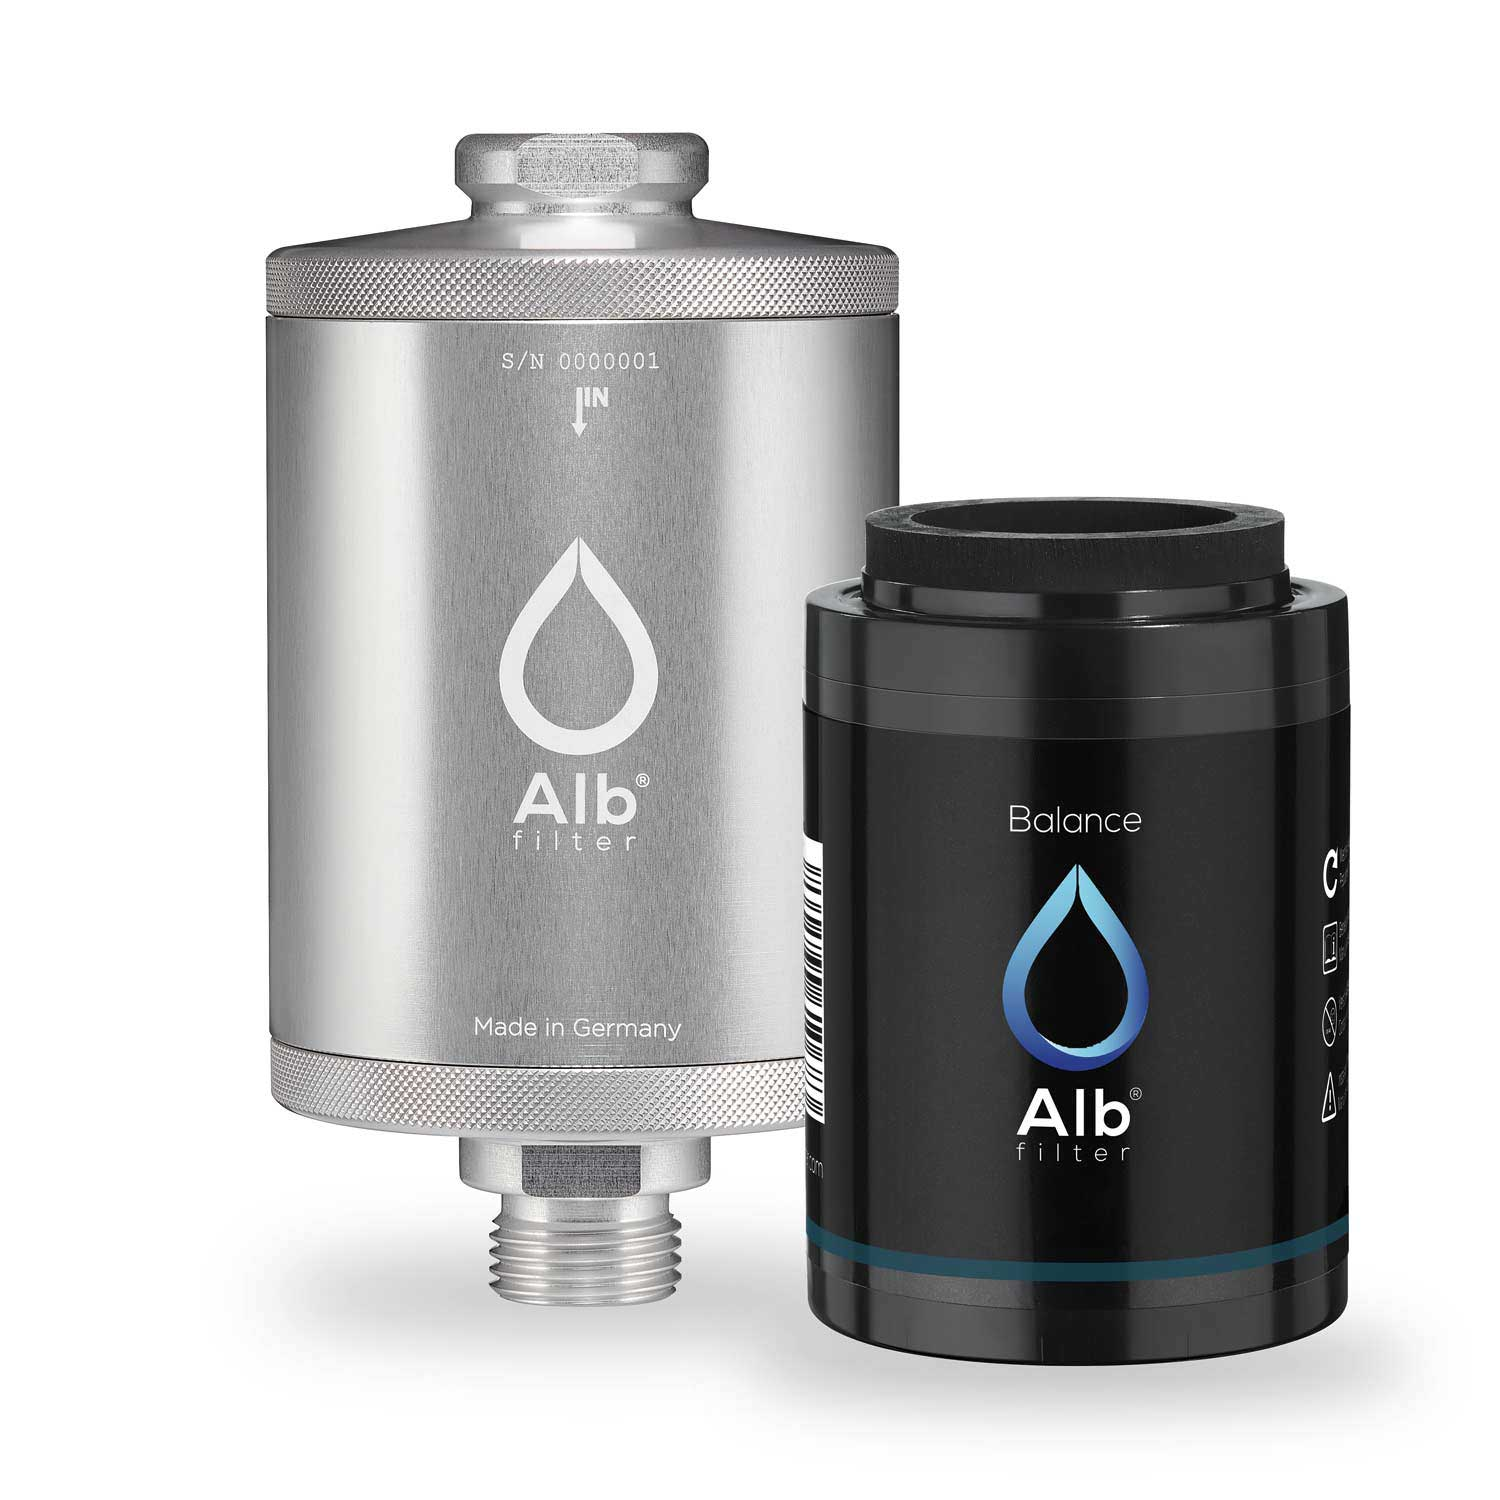 Alb Filter. Shower filter housing in silver with balance cartridge